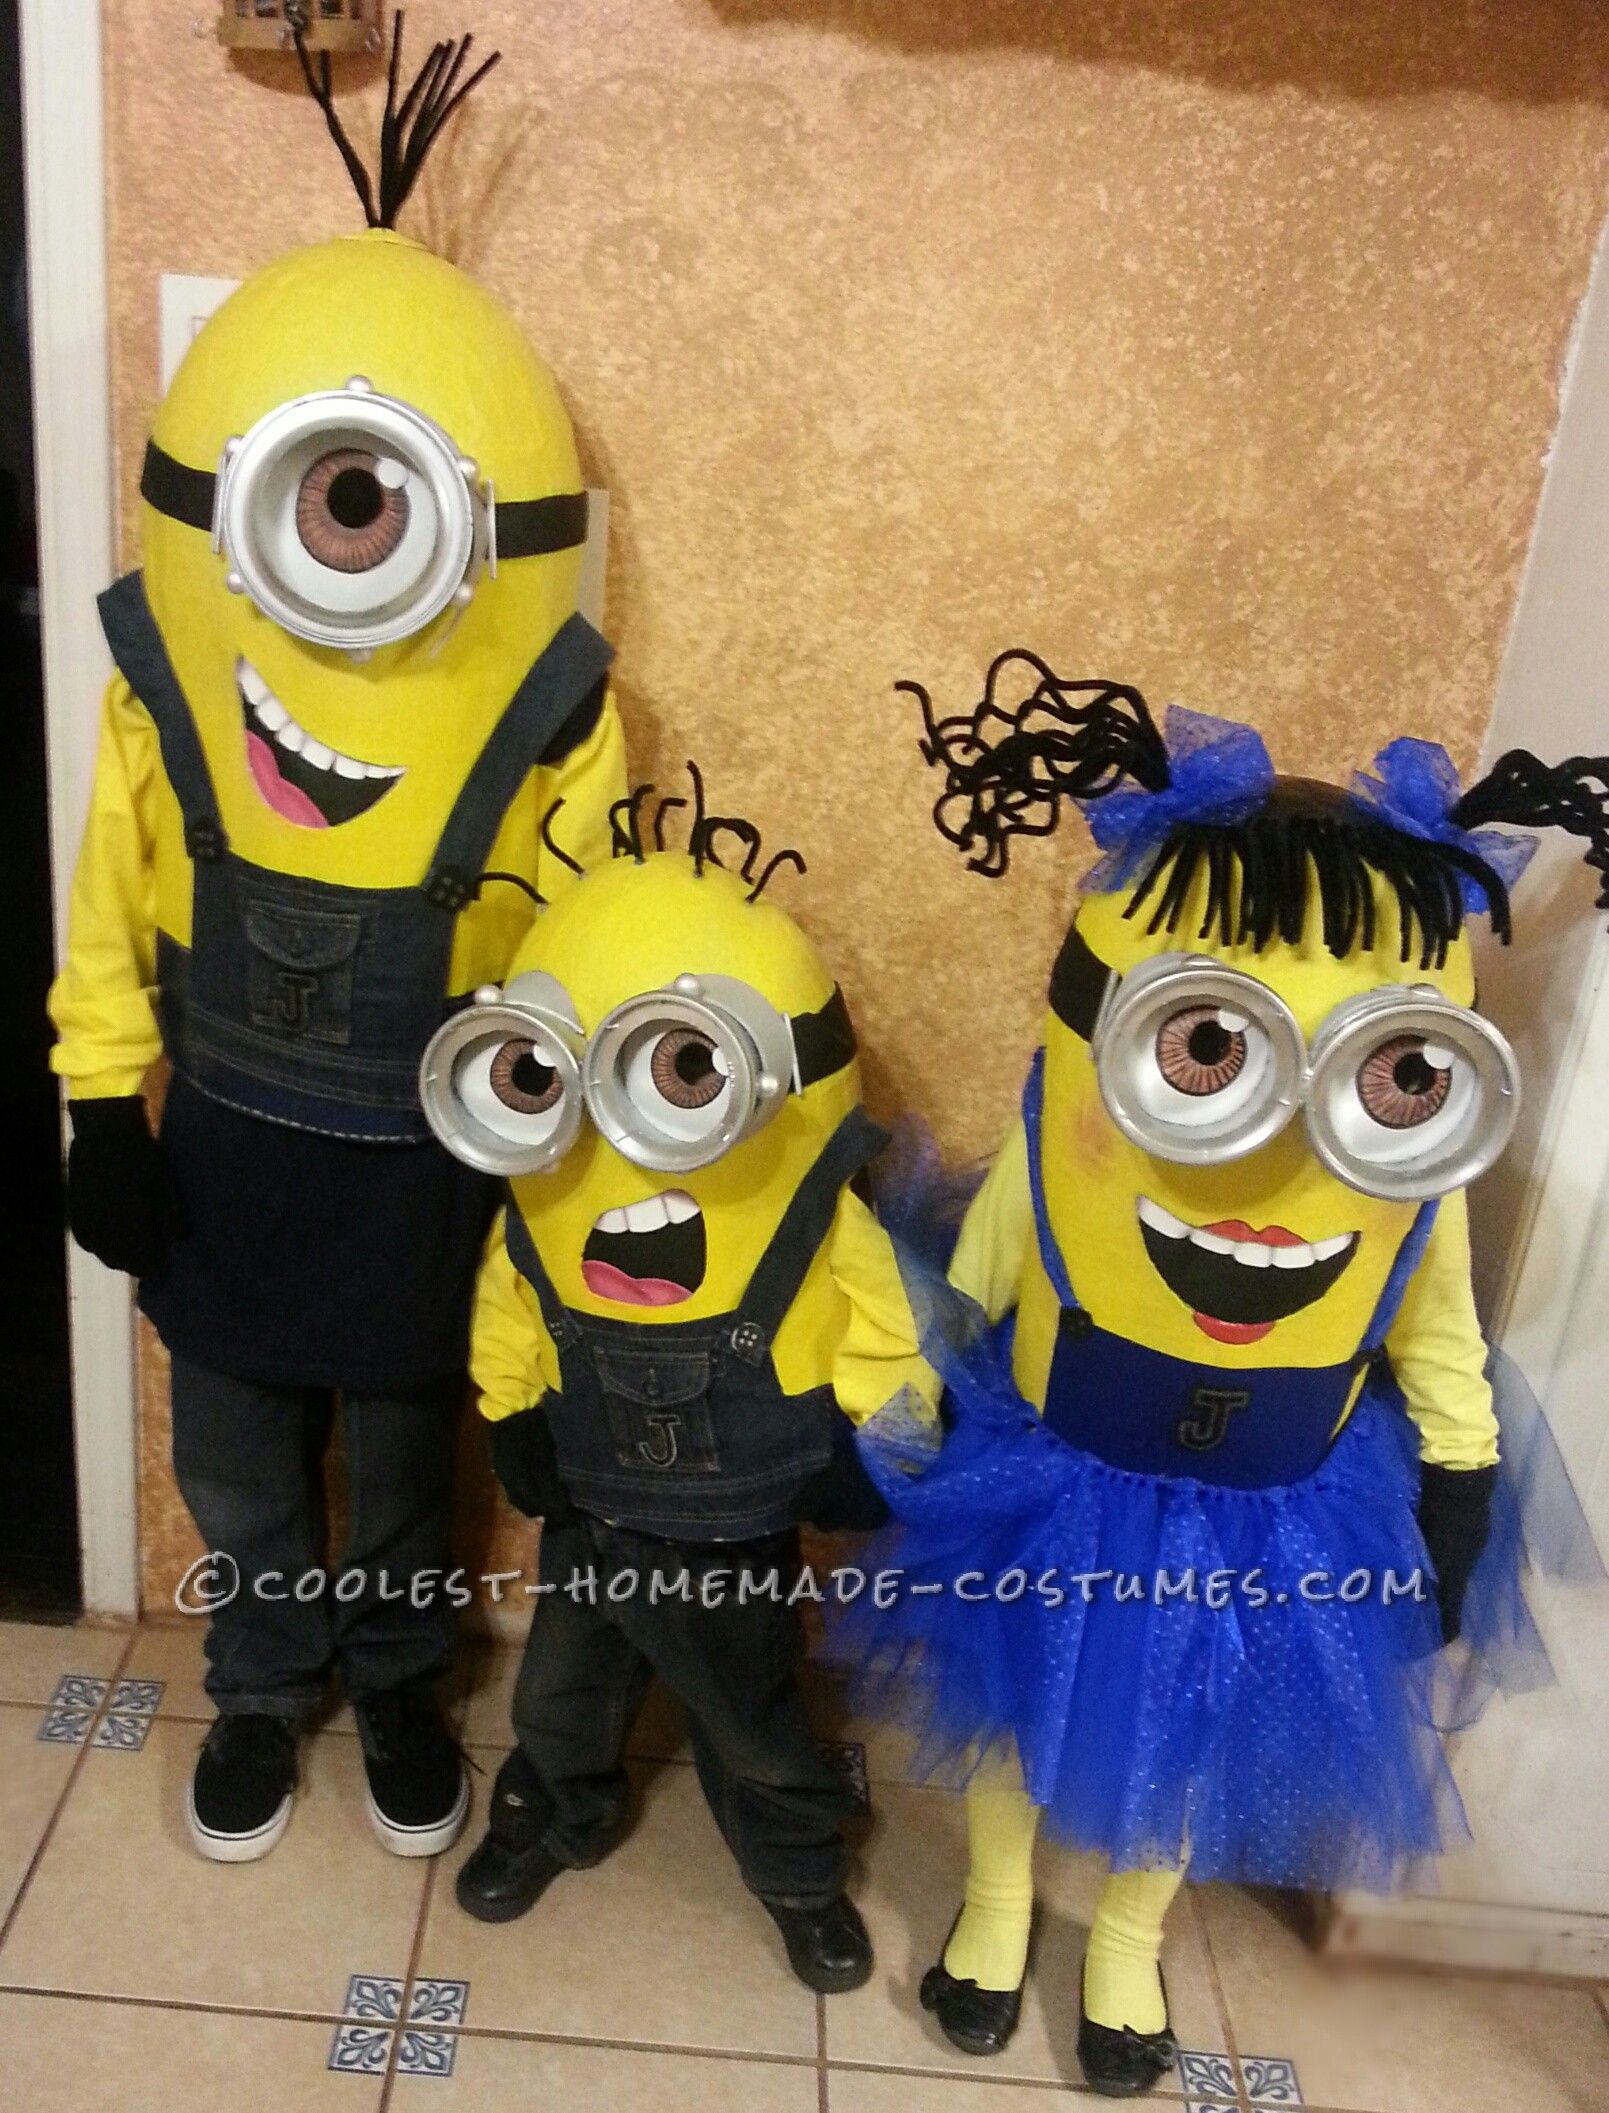 Homemade Despicable Me Minions Group Costumeu2026 Coolest Online Halloween Costume Contest & Homemade Despicable Me Minions Group Costume | Pinterest | Halloween ...